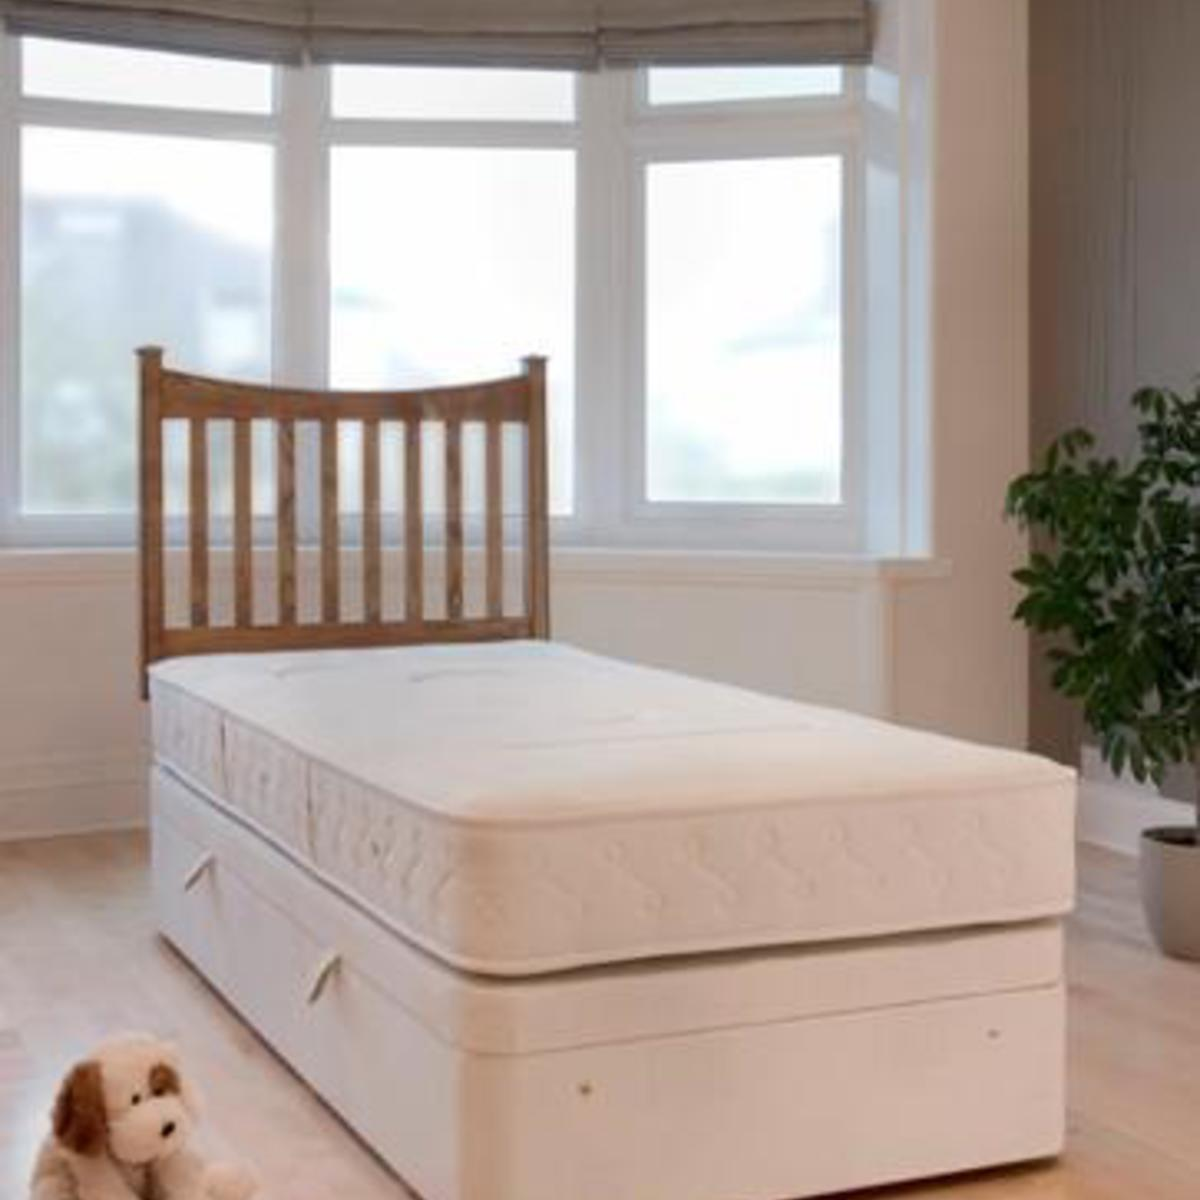 aa859ea49a24 Handmade Single beds with storage | Glasgow bed shop | Robinsons Beds